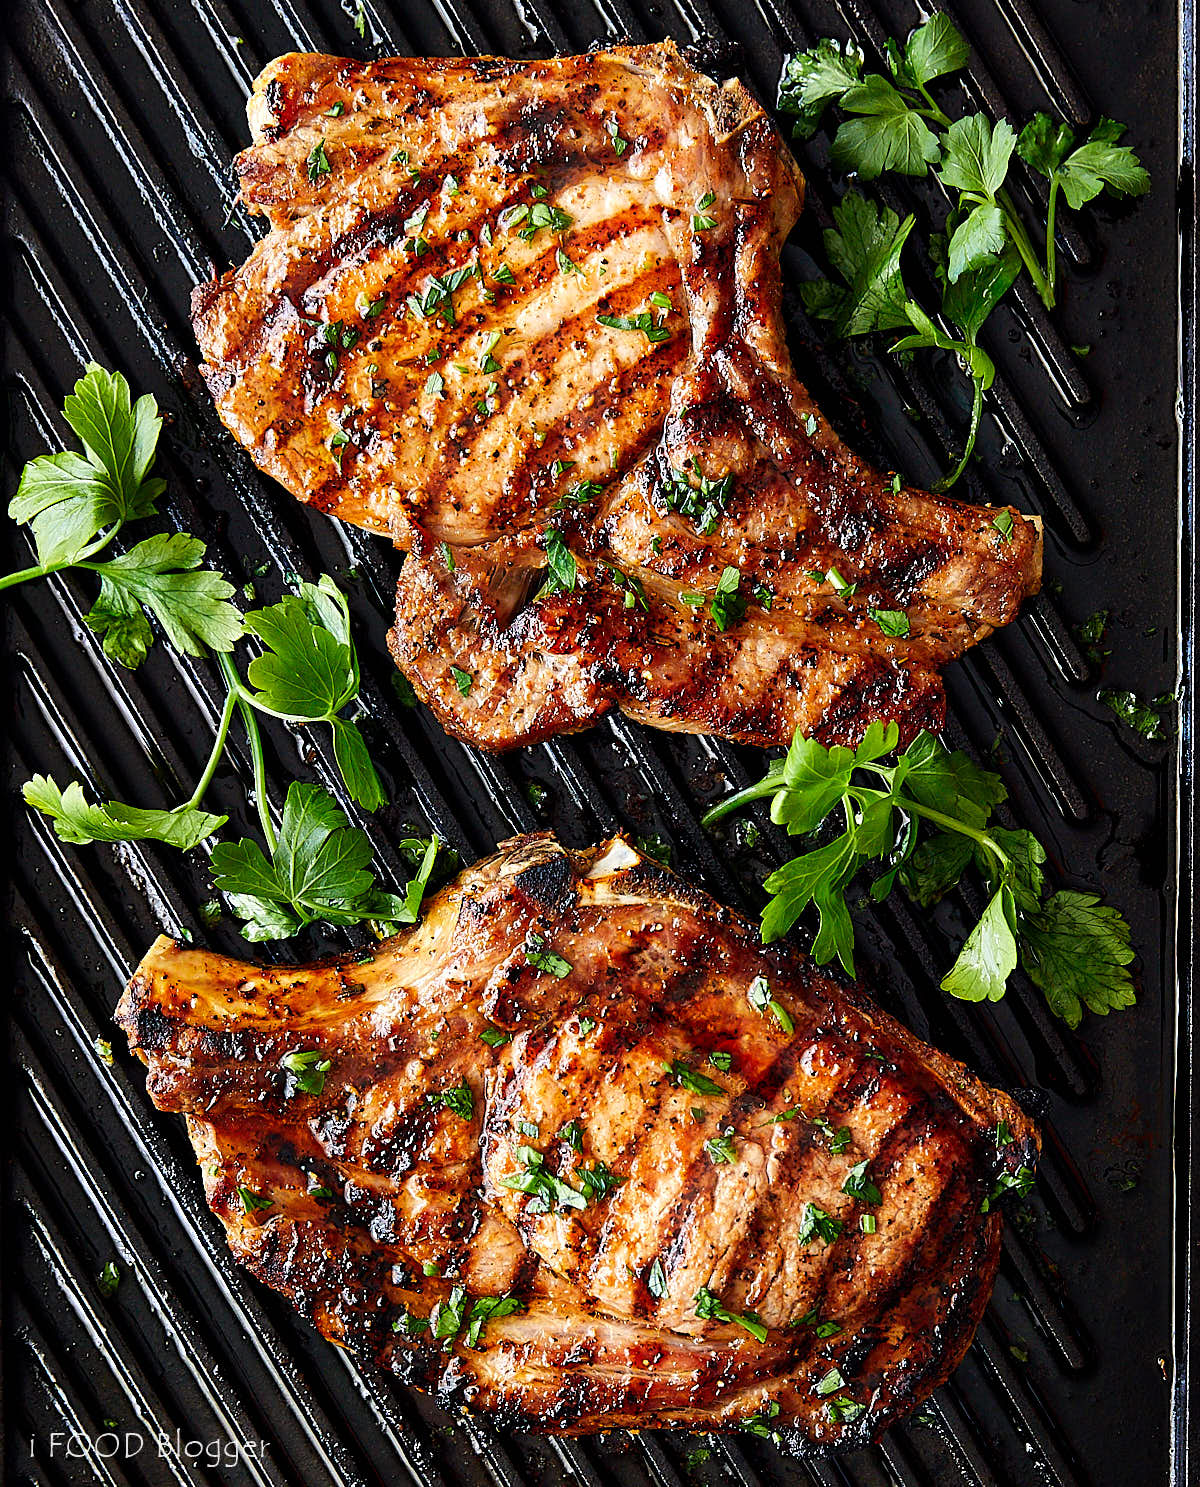 Broiled Pork Chops With Creole Seasoning Craving Tasty